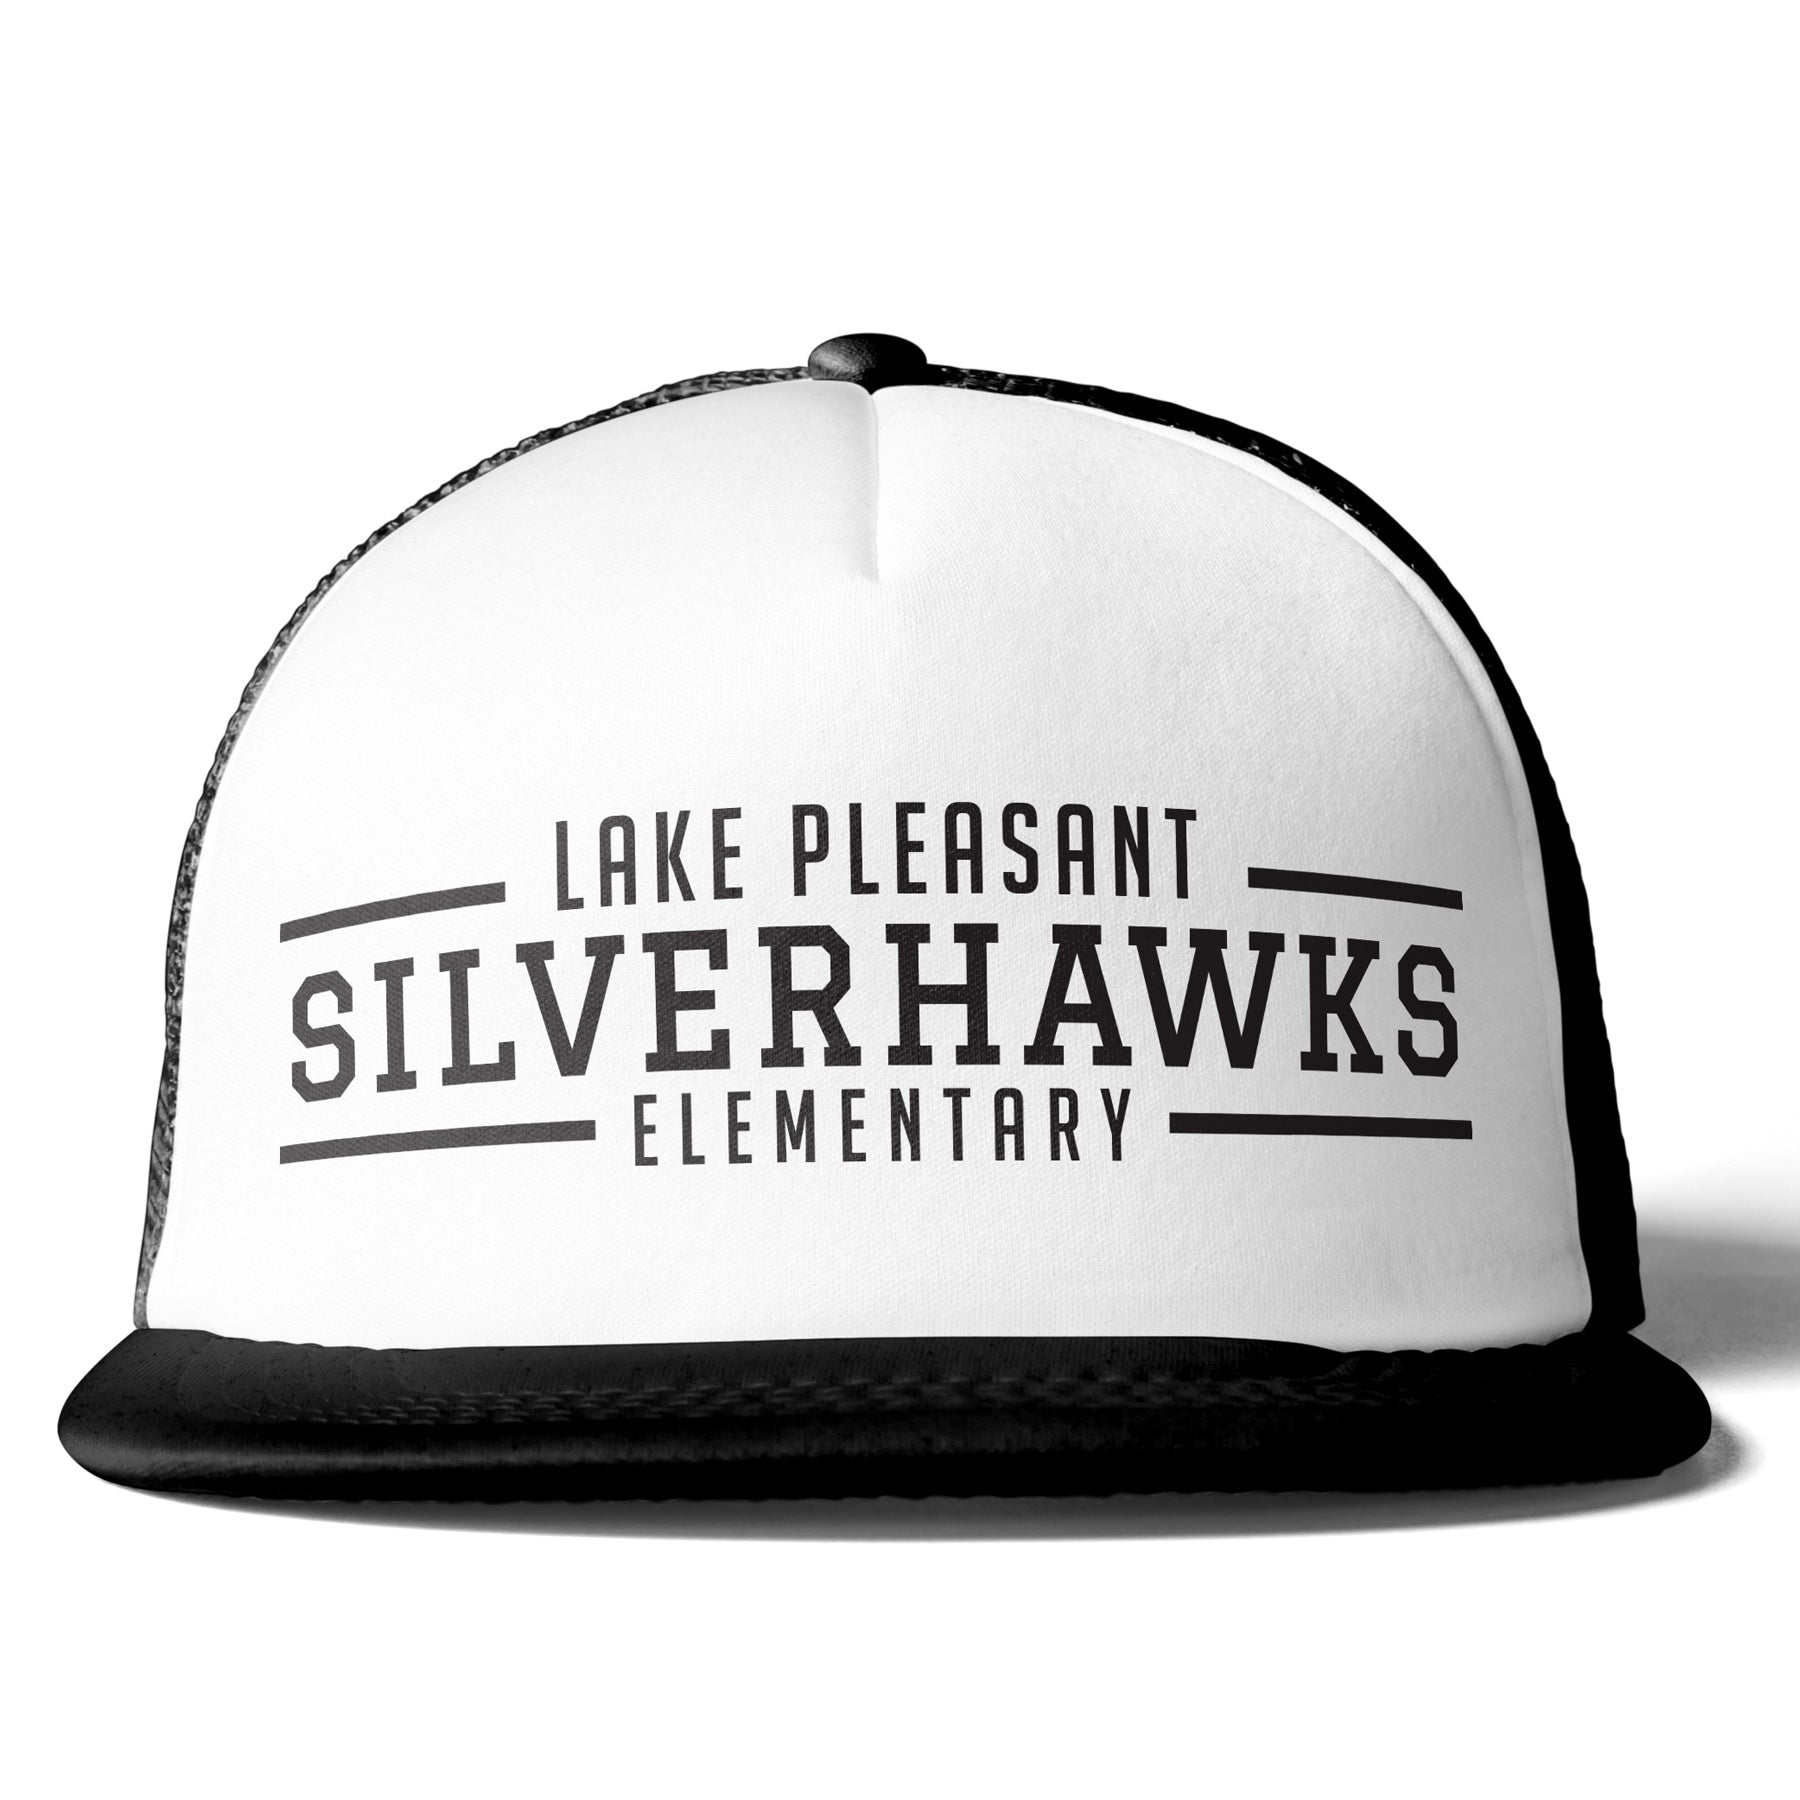 Black and White Trucker Hat (6 different design options)